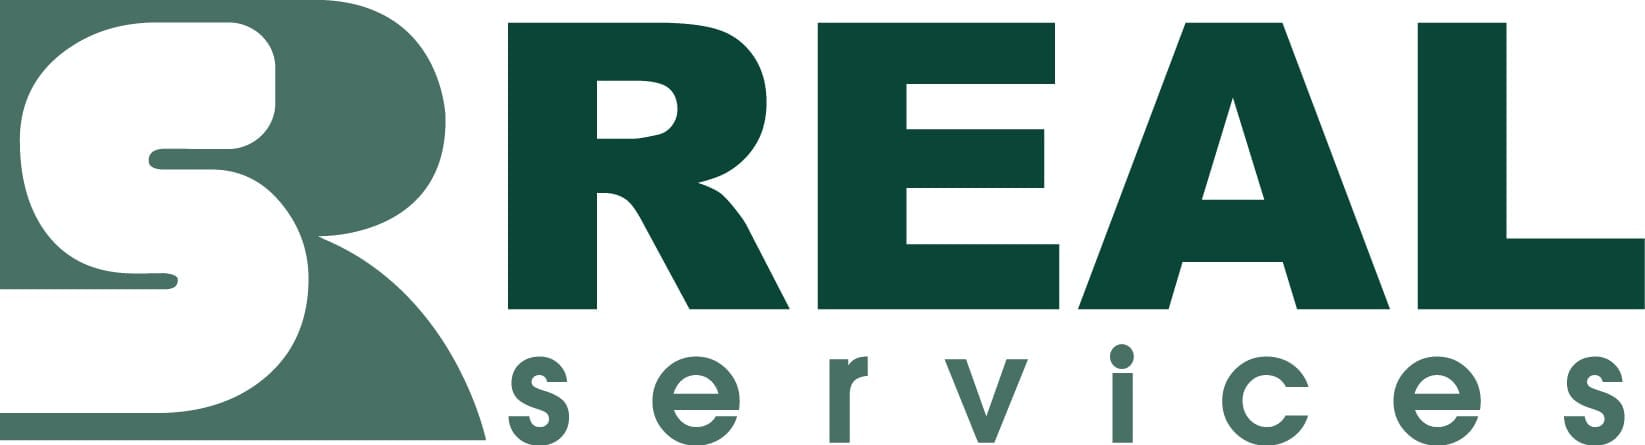 Home Comfort Experts Partners With Real Services